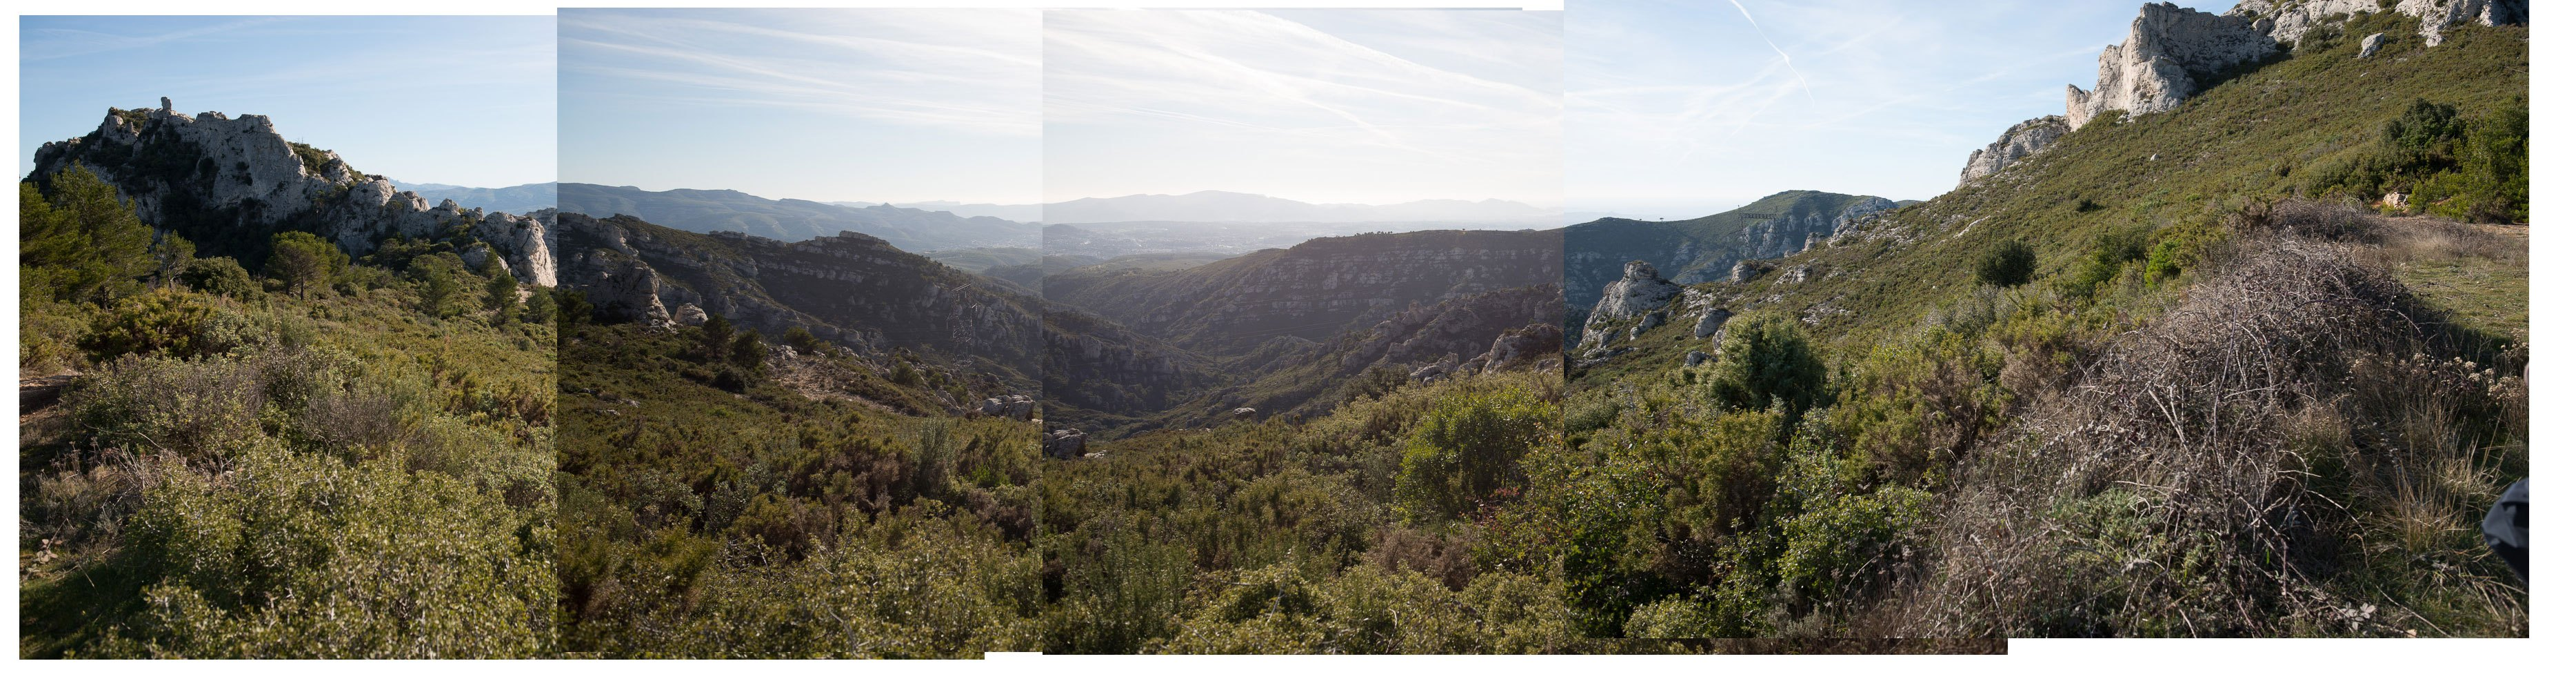 255 7 ways to create stunning photo panoramas 23 dearsusan a series of photographs of the hills of provence stiched into a panoramic picture jeuxipadfo Gallery